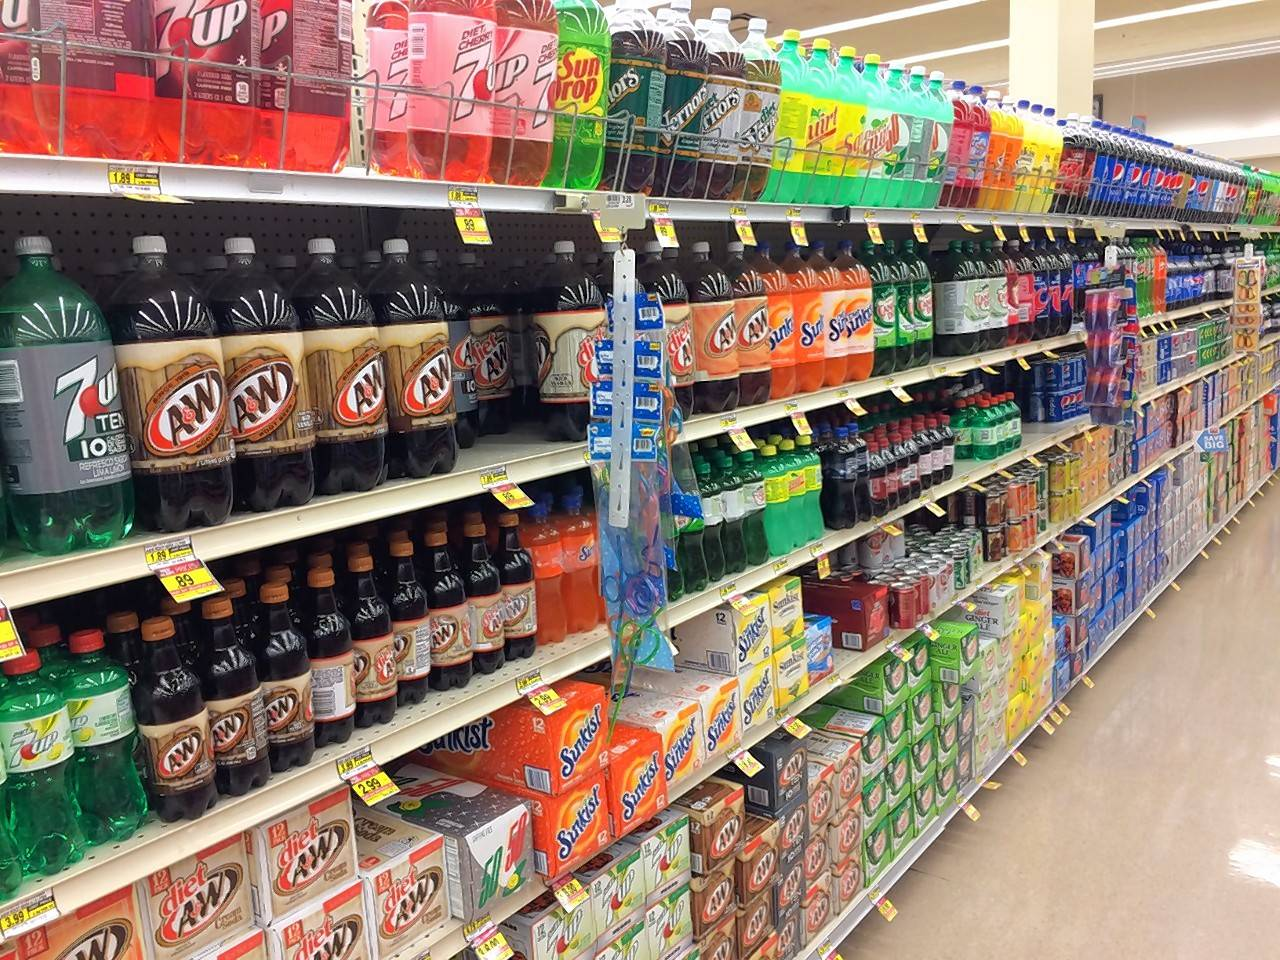 Cook County's sweetened-beverage tax of a penny per ounce will nearly double the cost of a two-liter bottle of soda.